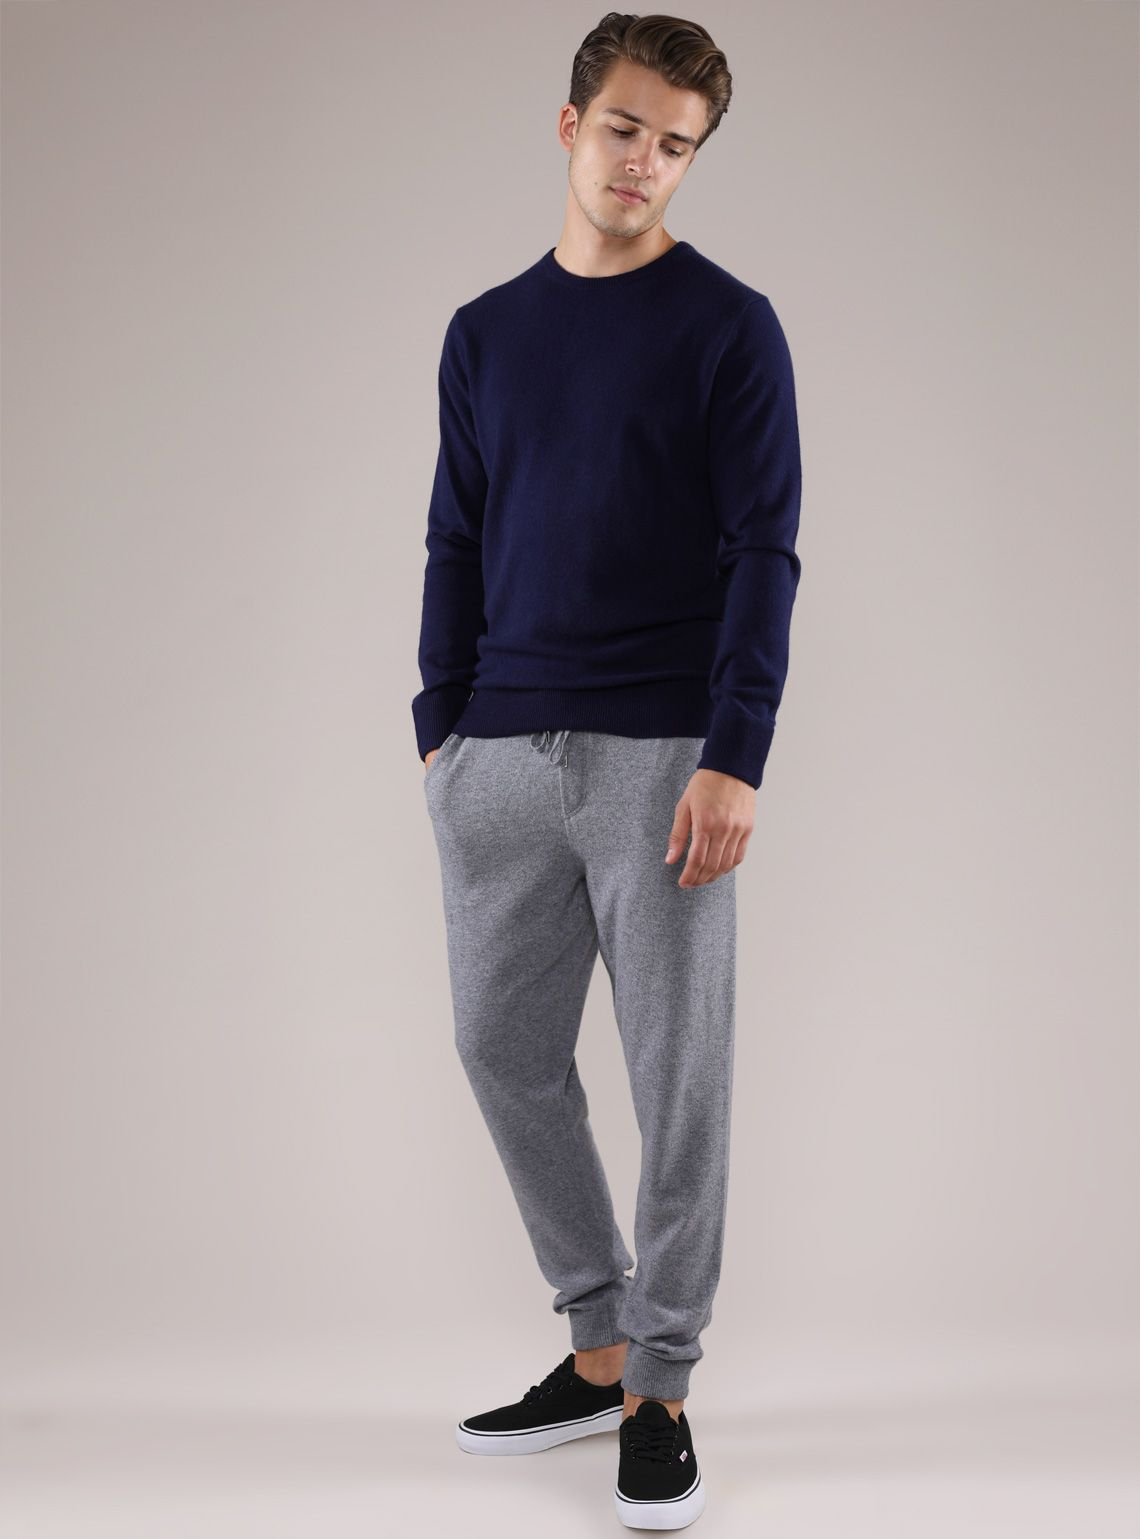 sweatpants with sweater